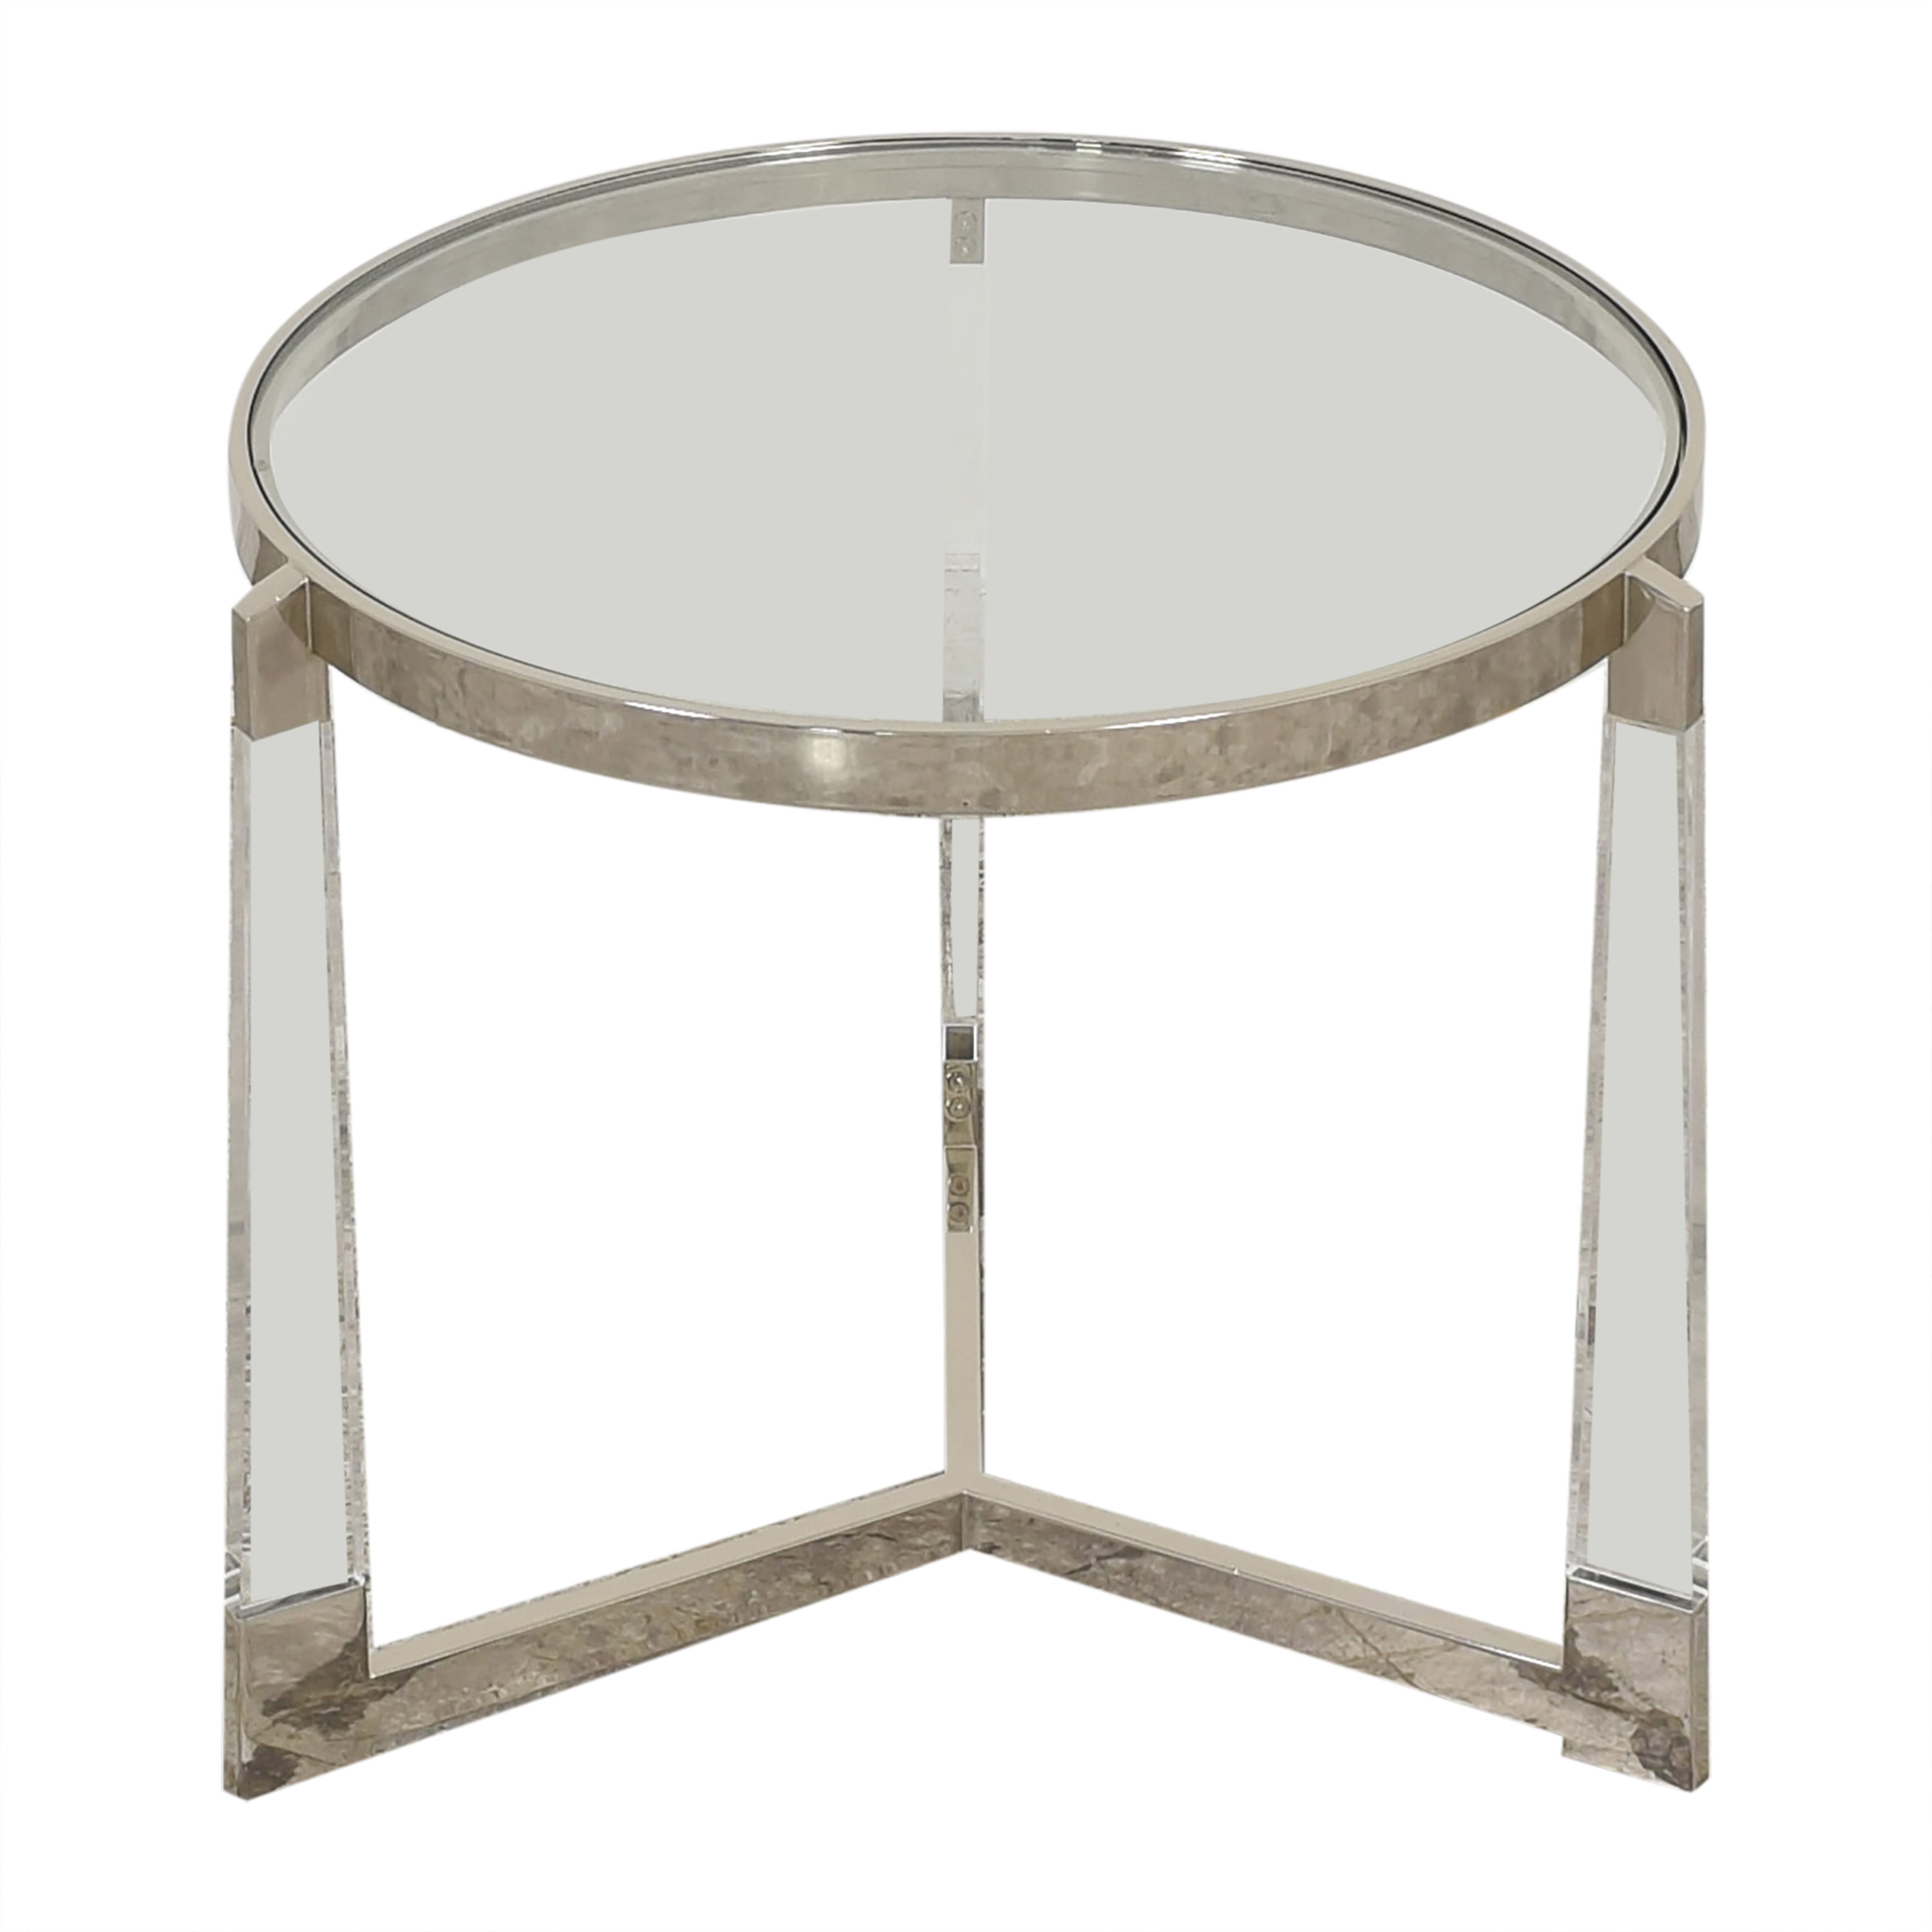 Round Side Table with Transparent Surface used